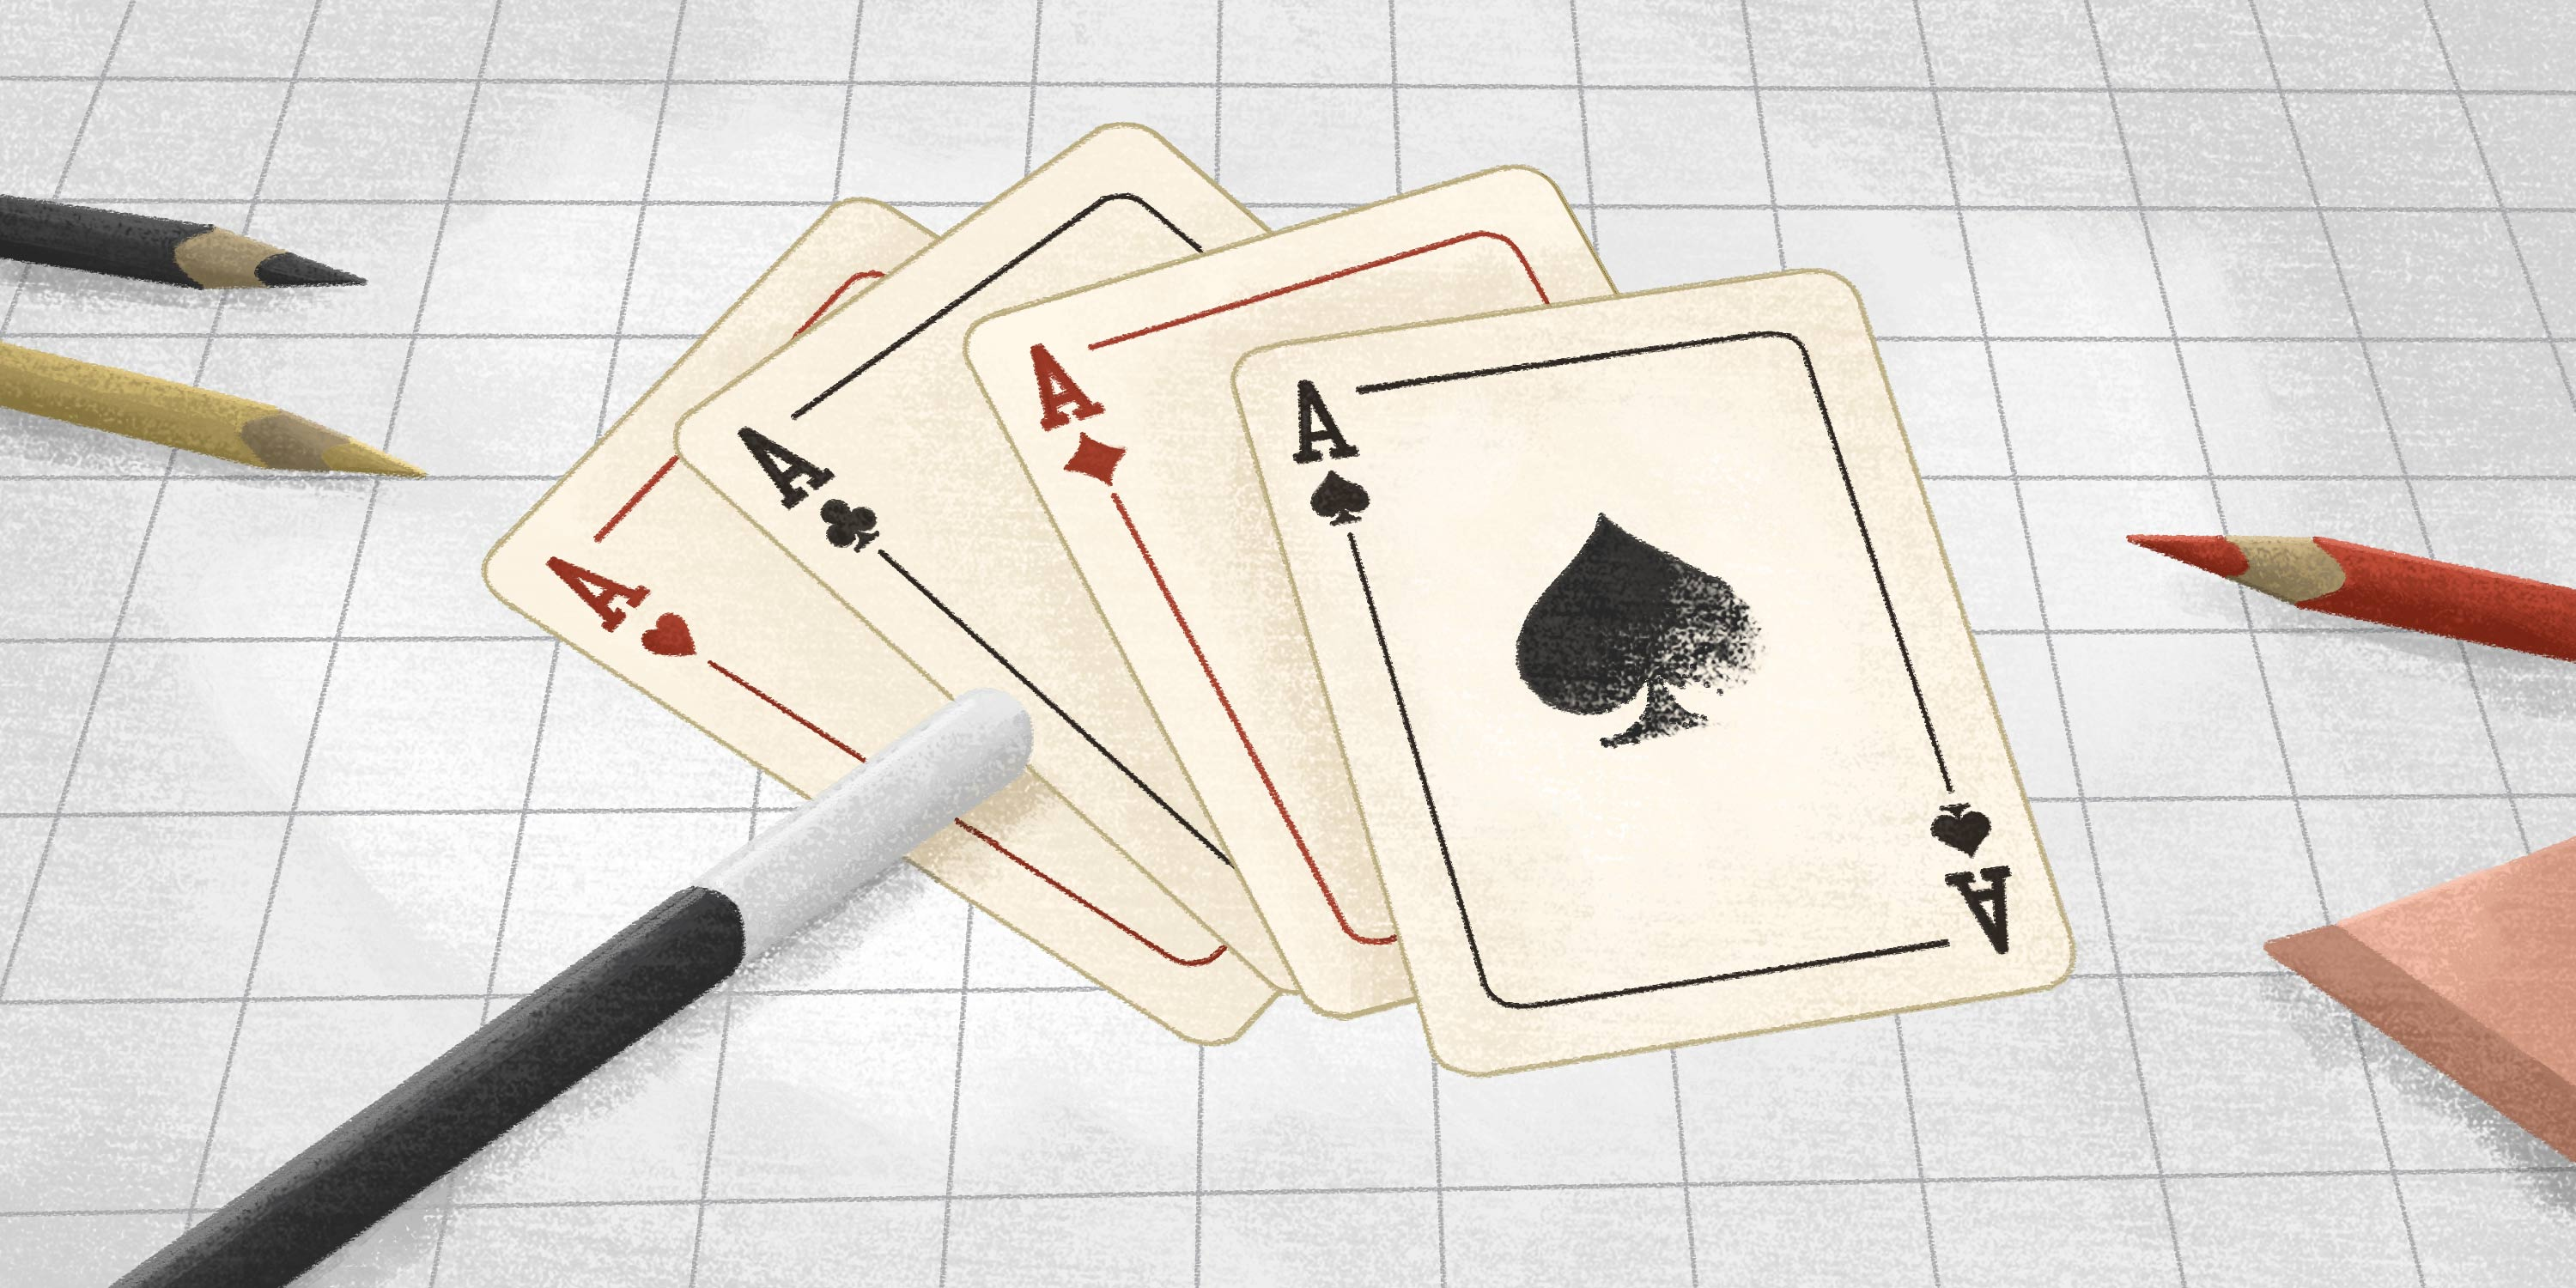 playing cards showing tricks up AP's sleeve to improve the payables process